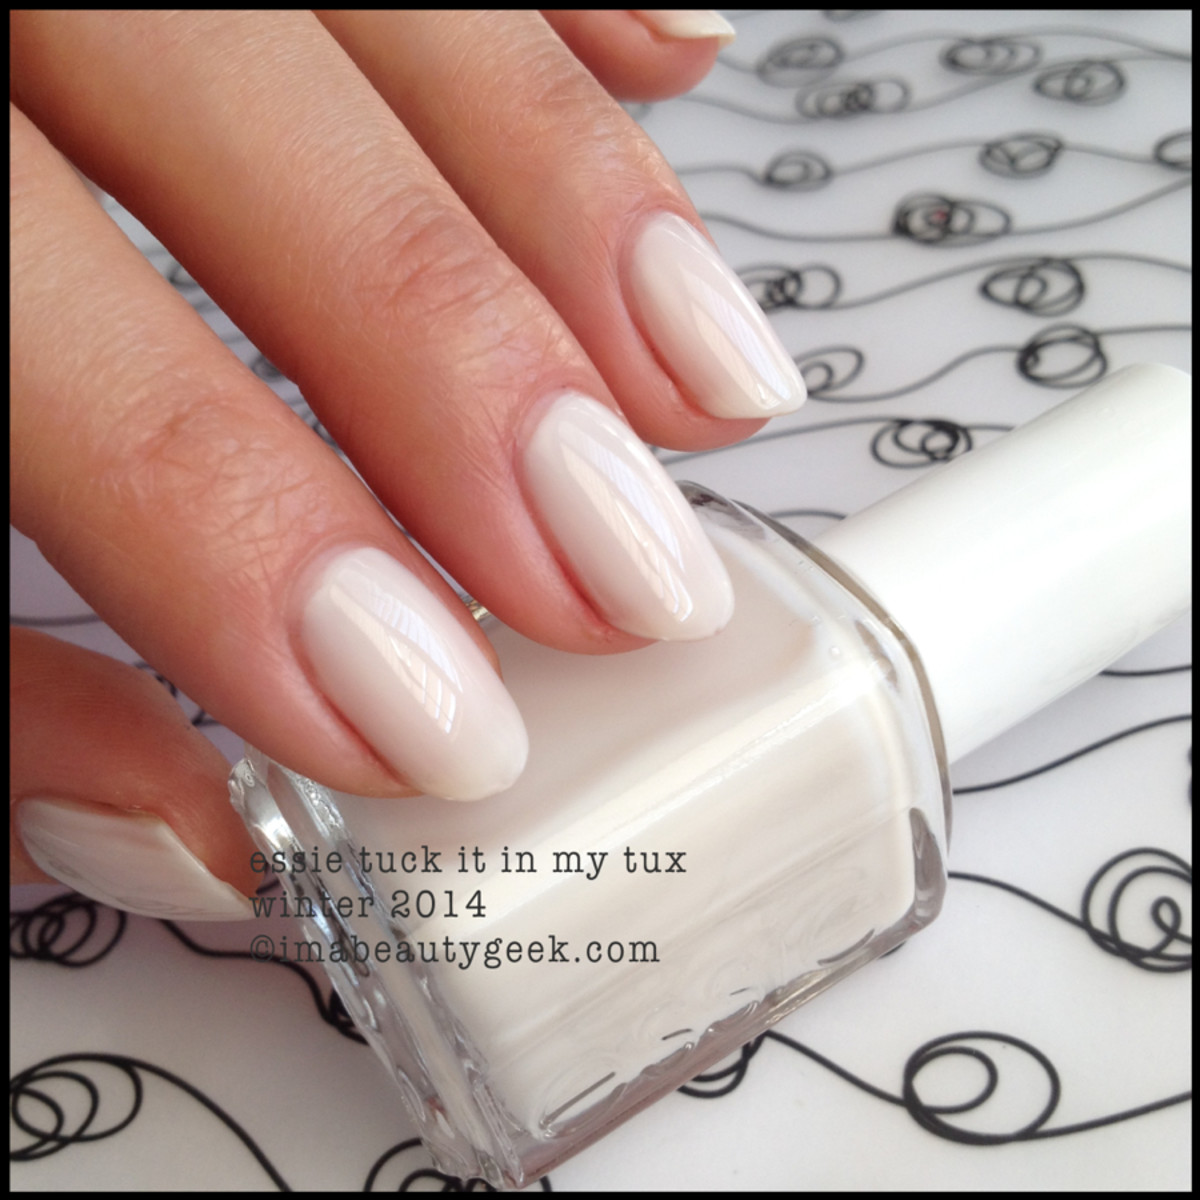 Essie Tuck it in my Tux - Essie winter 2014